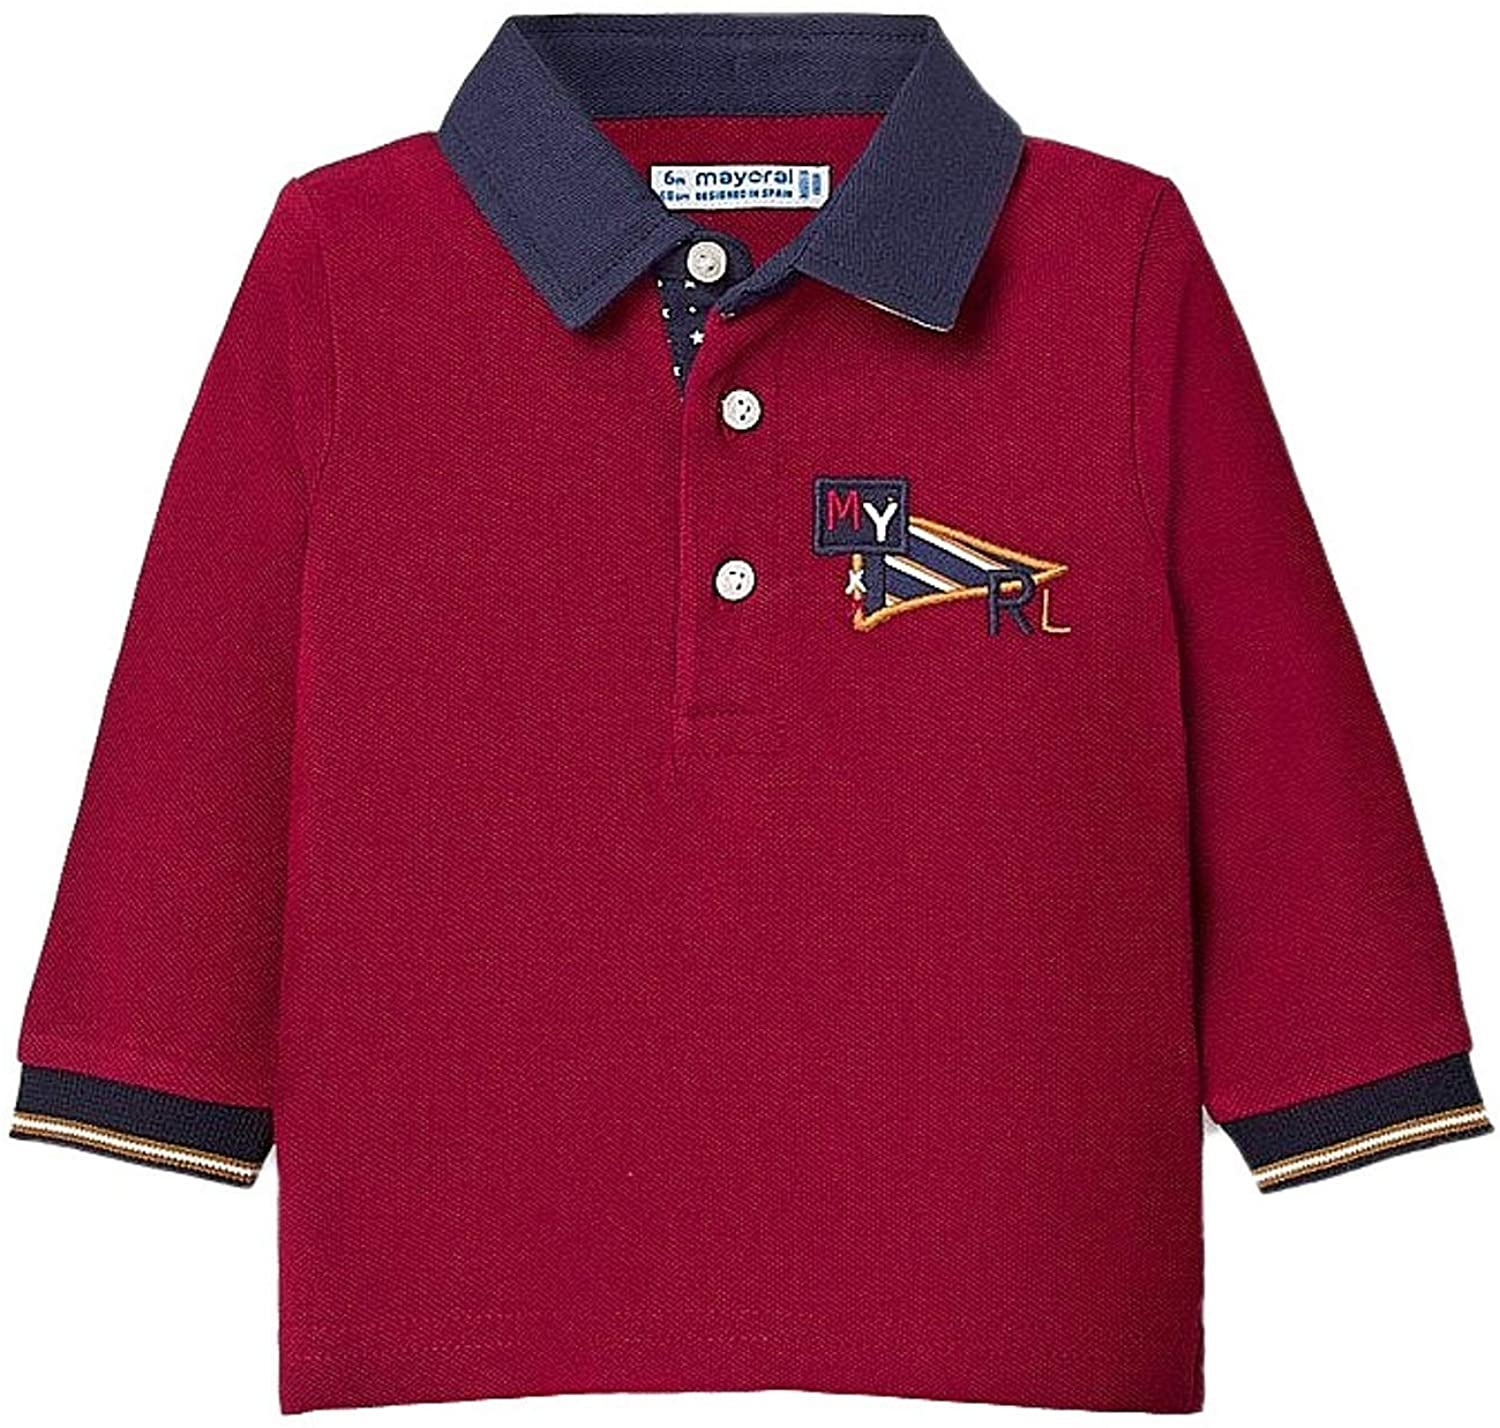 Mayoral - L/s Polo for Baby-Boys - 2126, Bordeaux